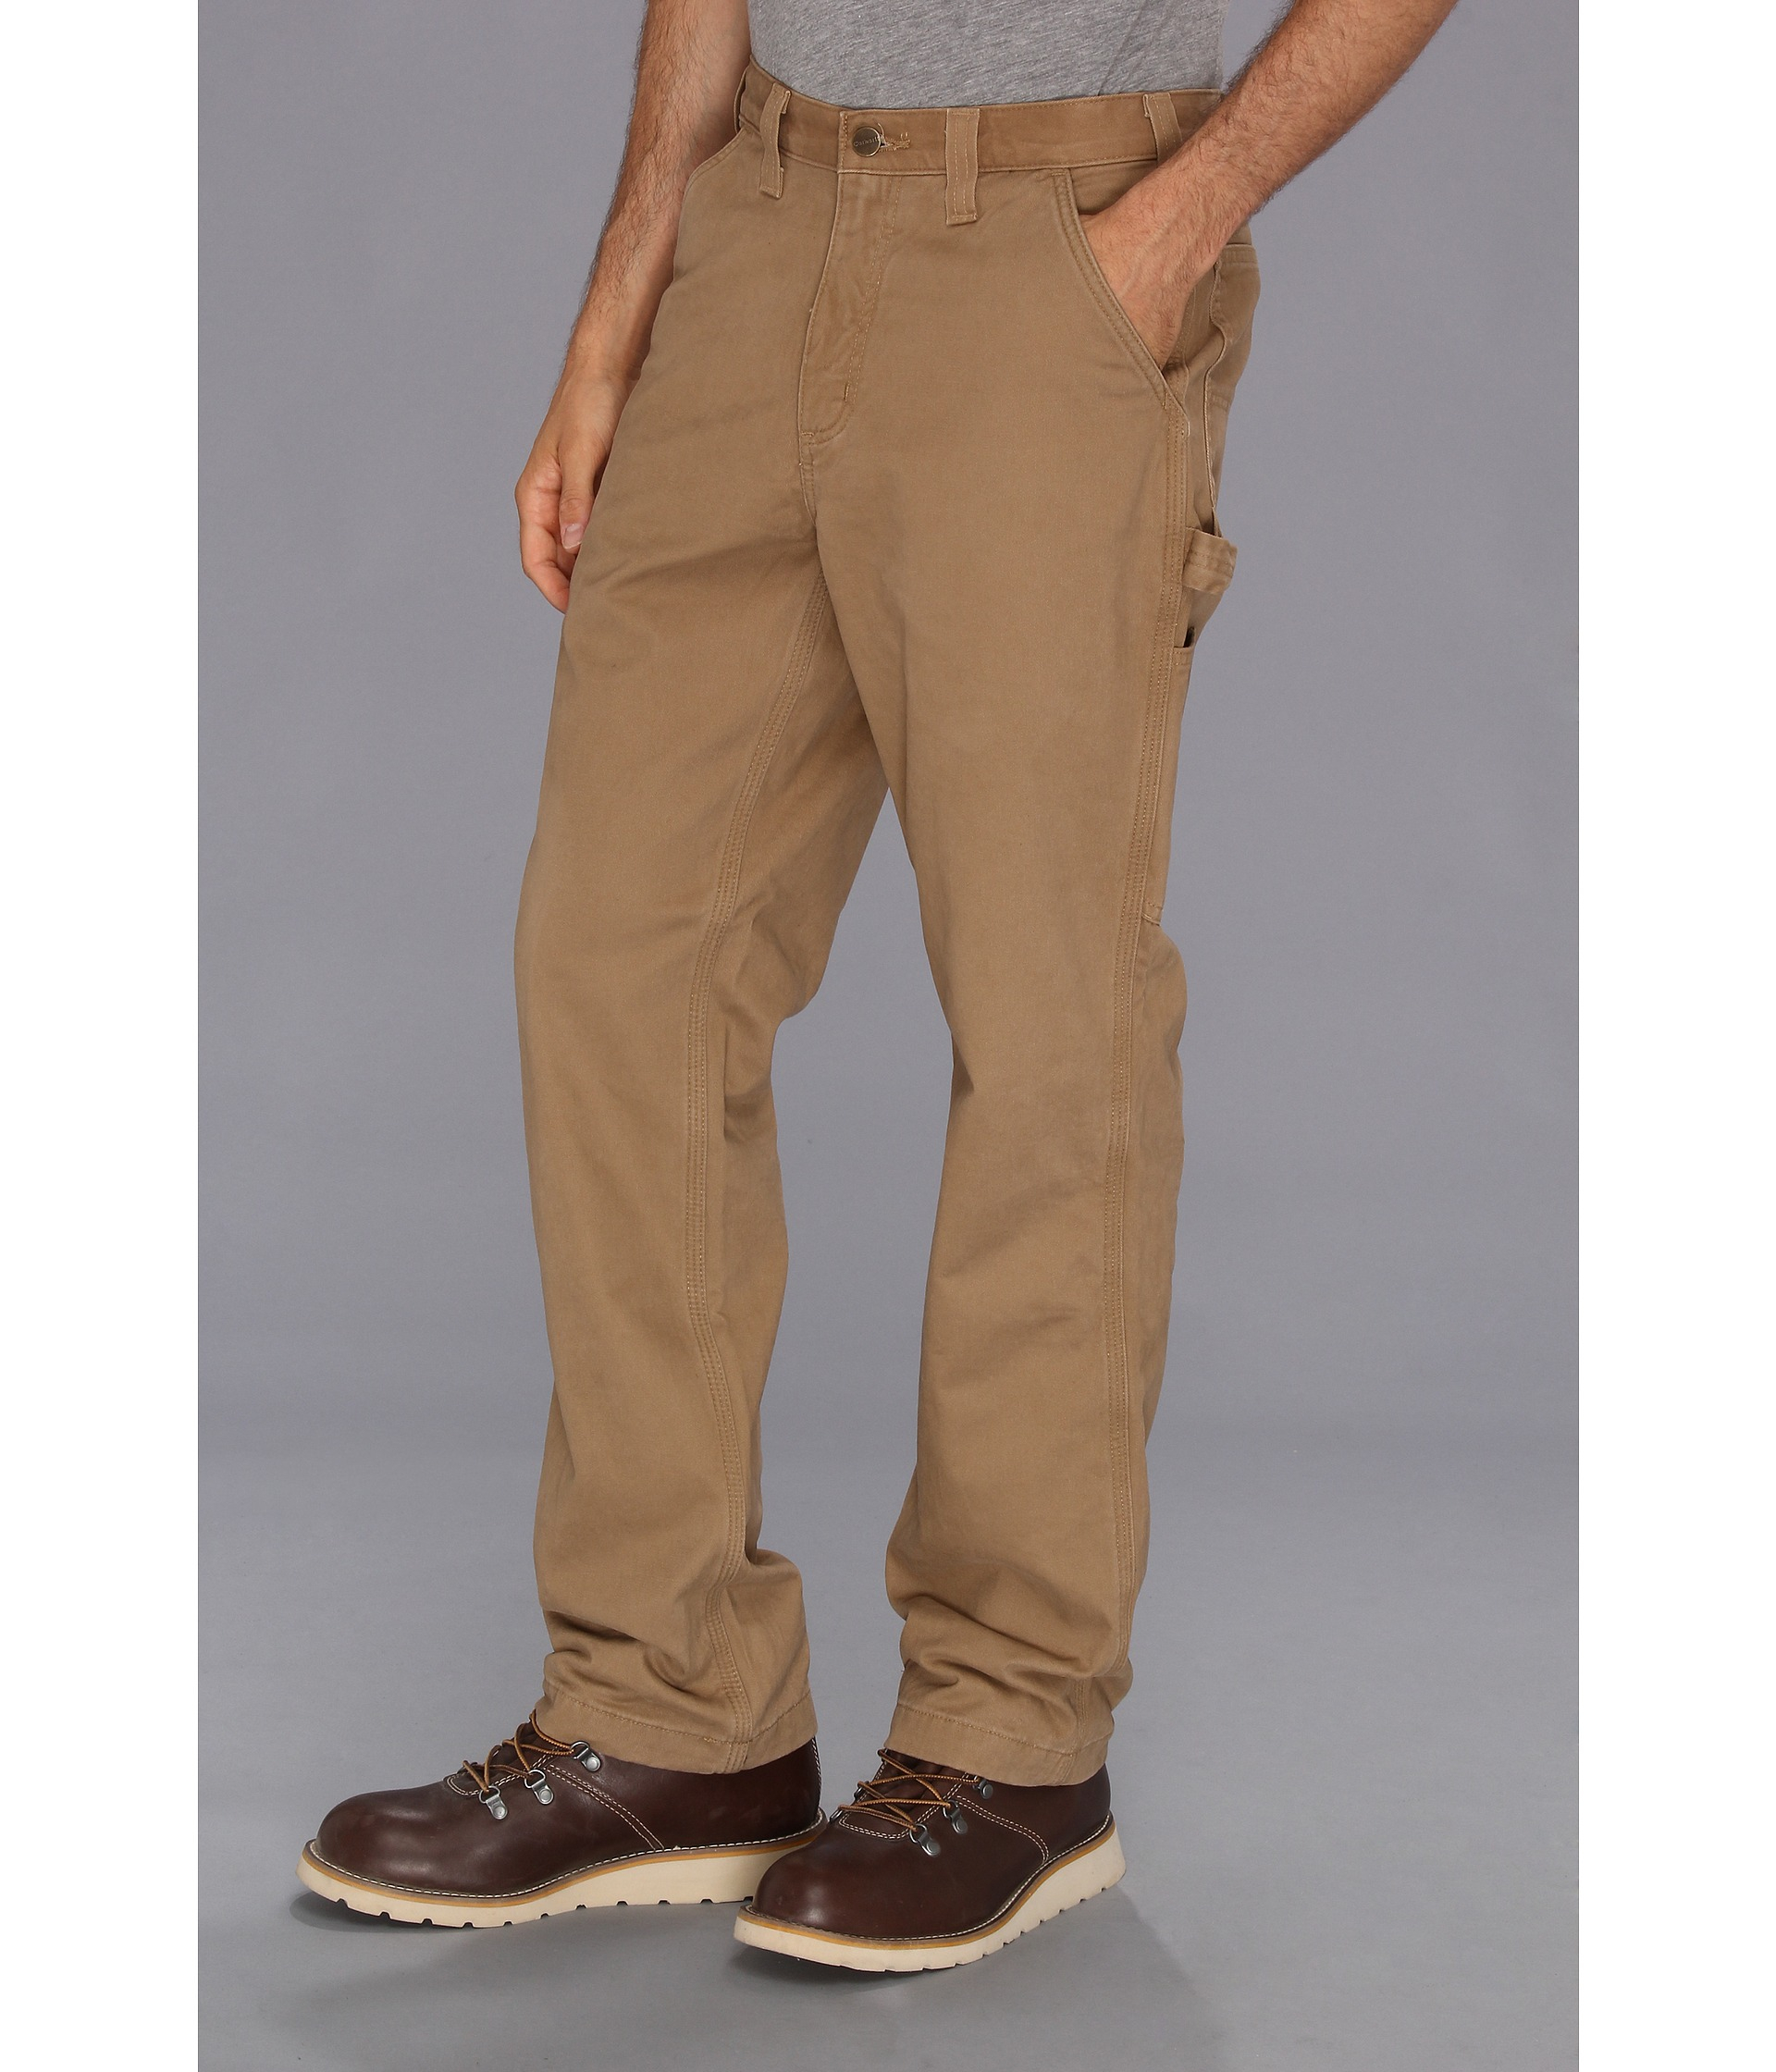 84e95a4ccf Carhartt Washed Twill Dungaree Flannel Lined Pant in Natural for Men - Lyst